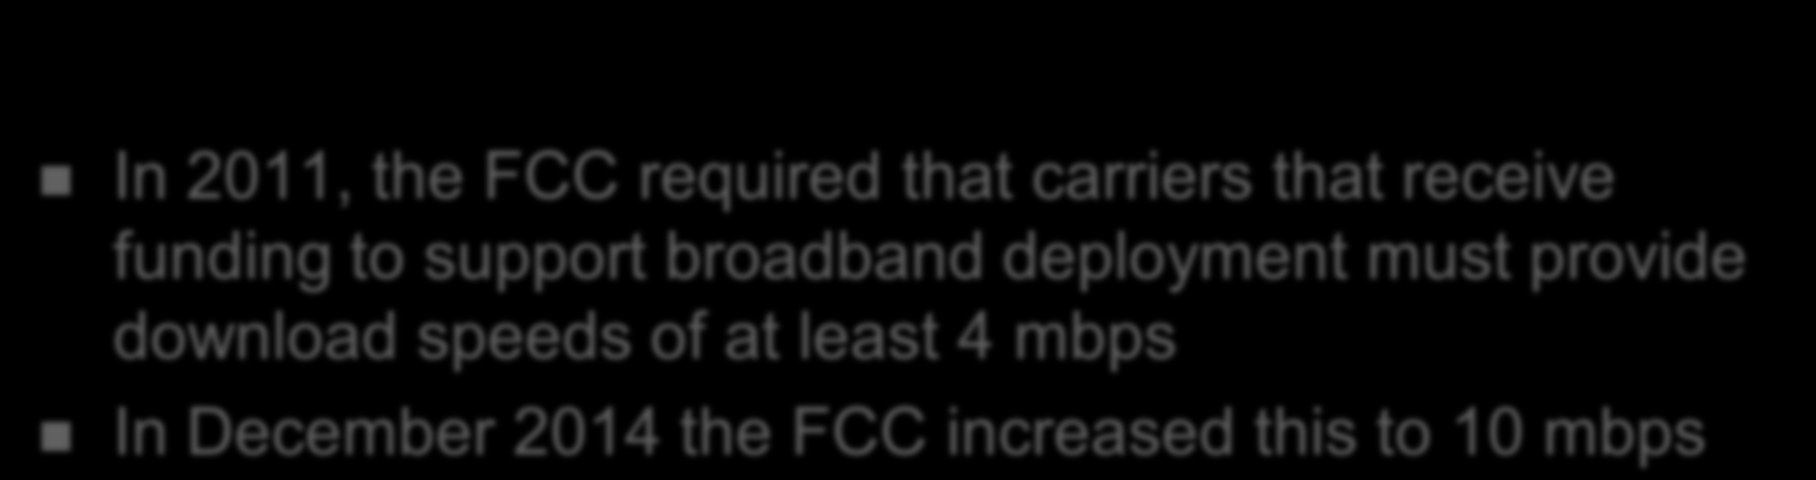 USF Reform In 2011, the FCC required that carriers that receive funding to support broadband